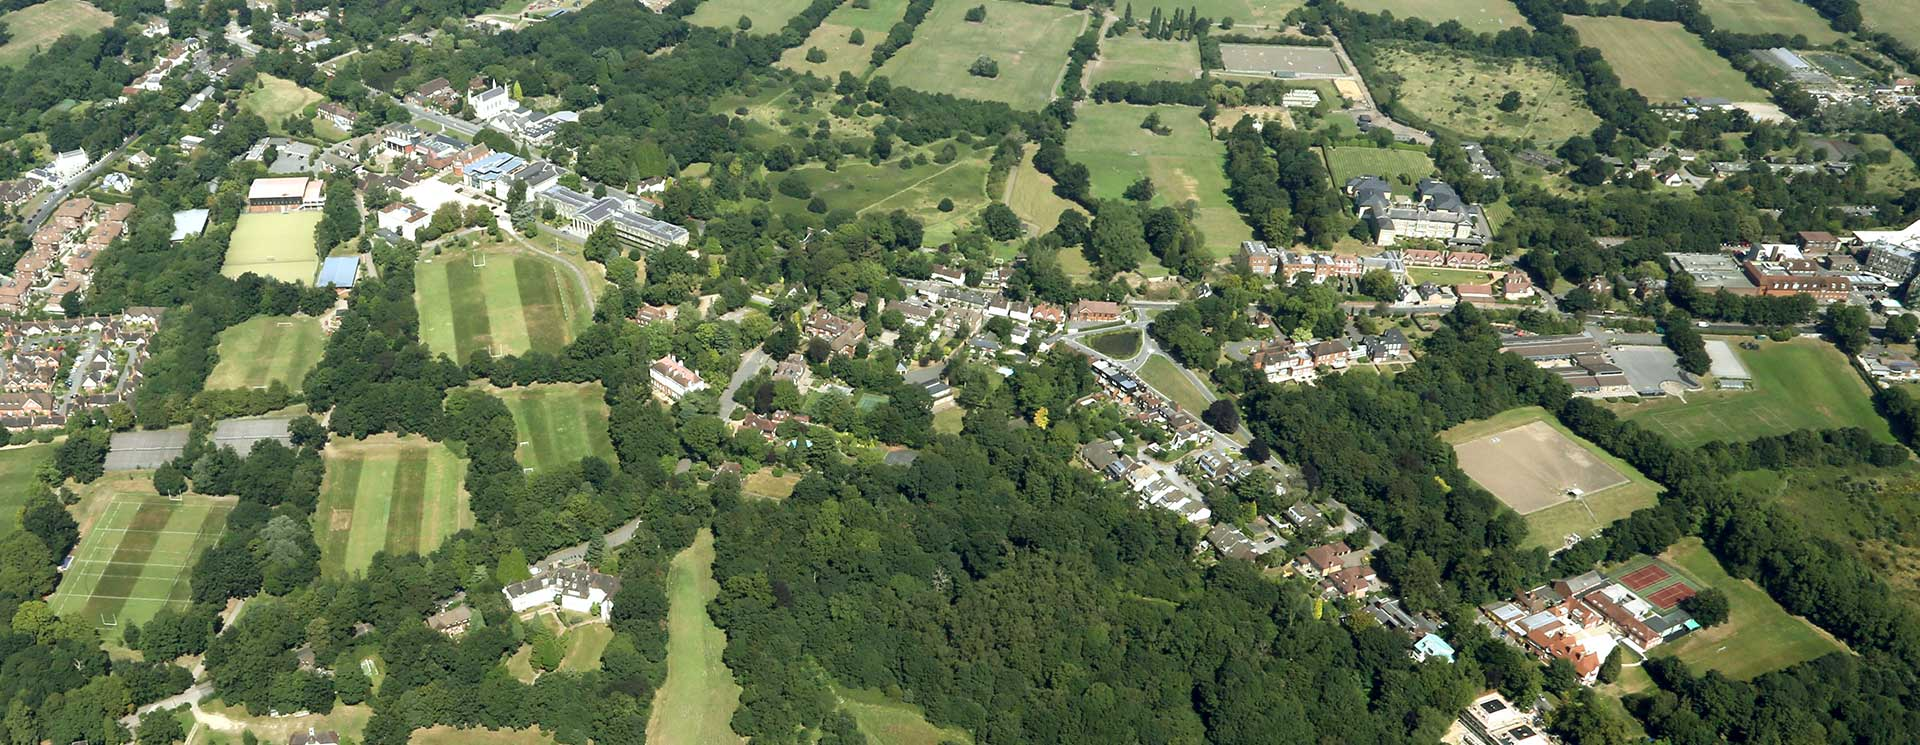 MIll Hill Schools from above